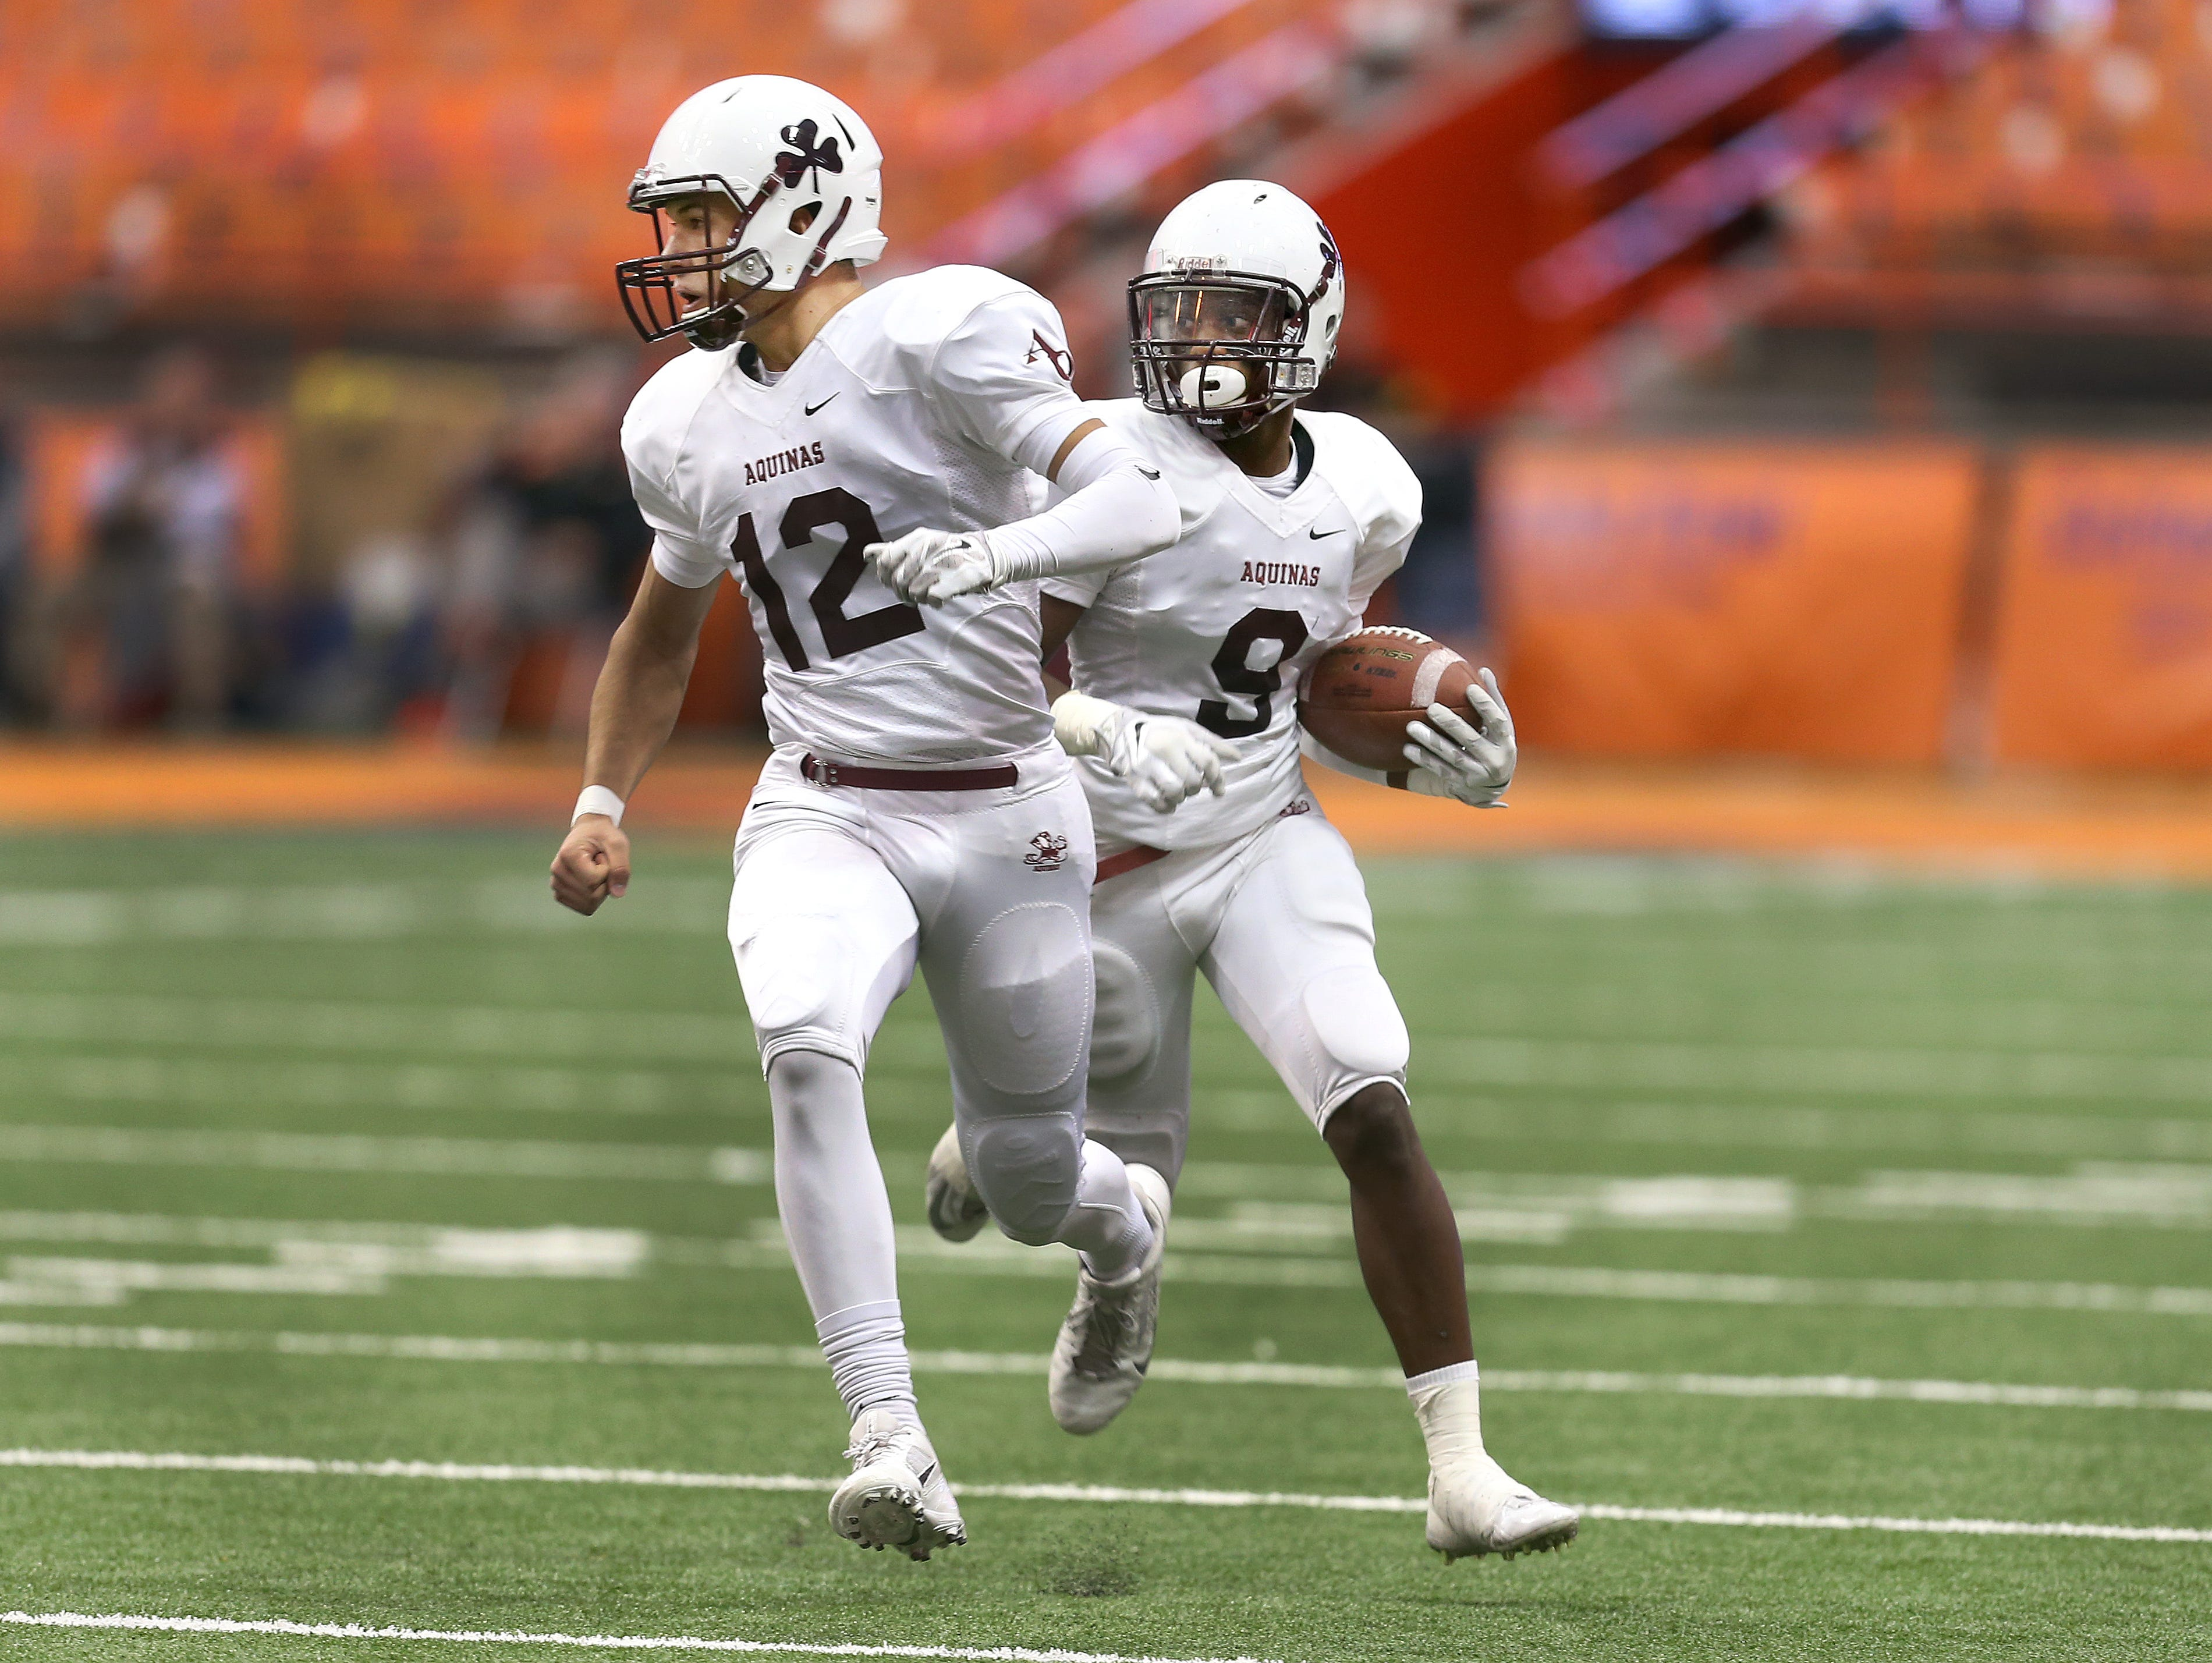 Aquinas quarterback Jake Zembiec (12) looks to block after receiver Earnest Edwards reversed direction after a catch. Aquinas beat Saratoga Springs 44-19 to win the State Class AA title.